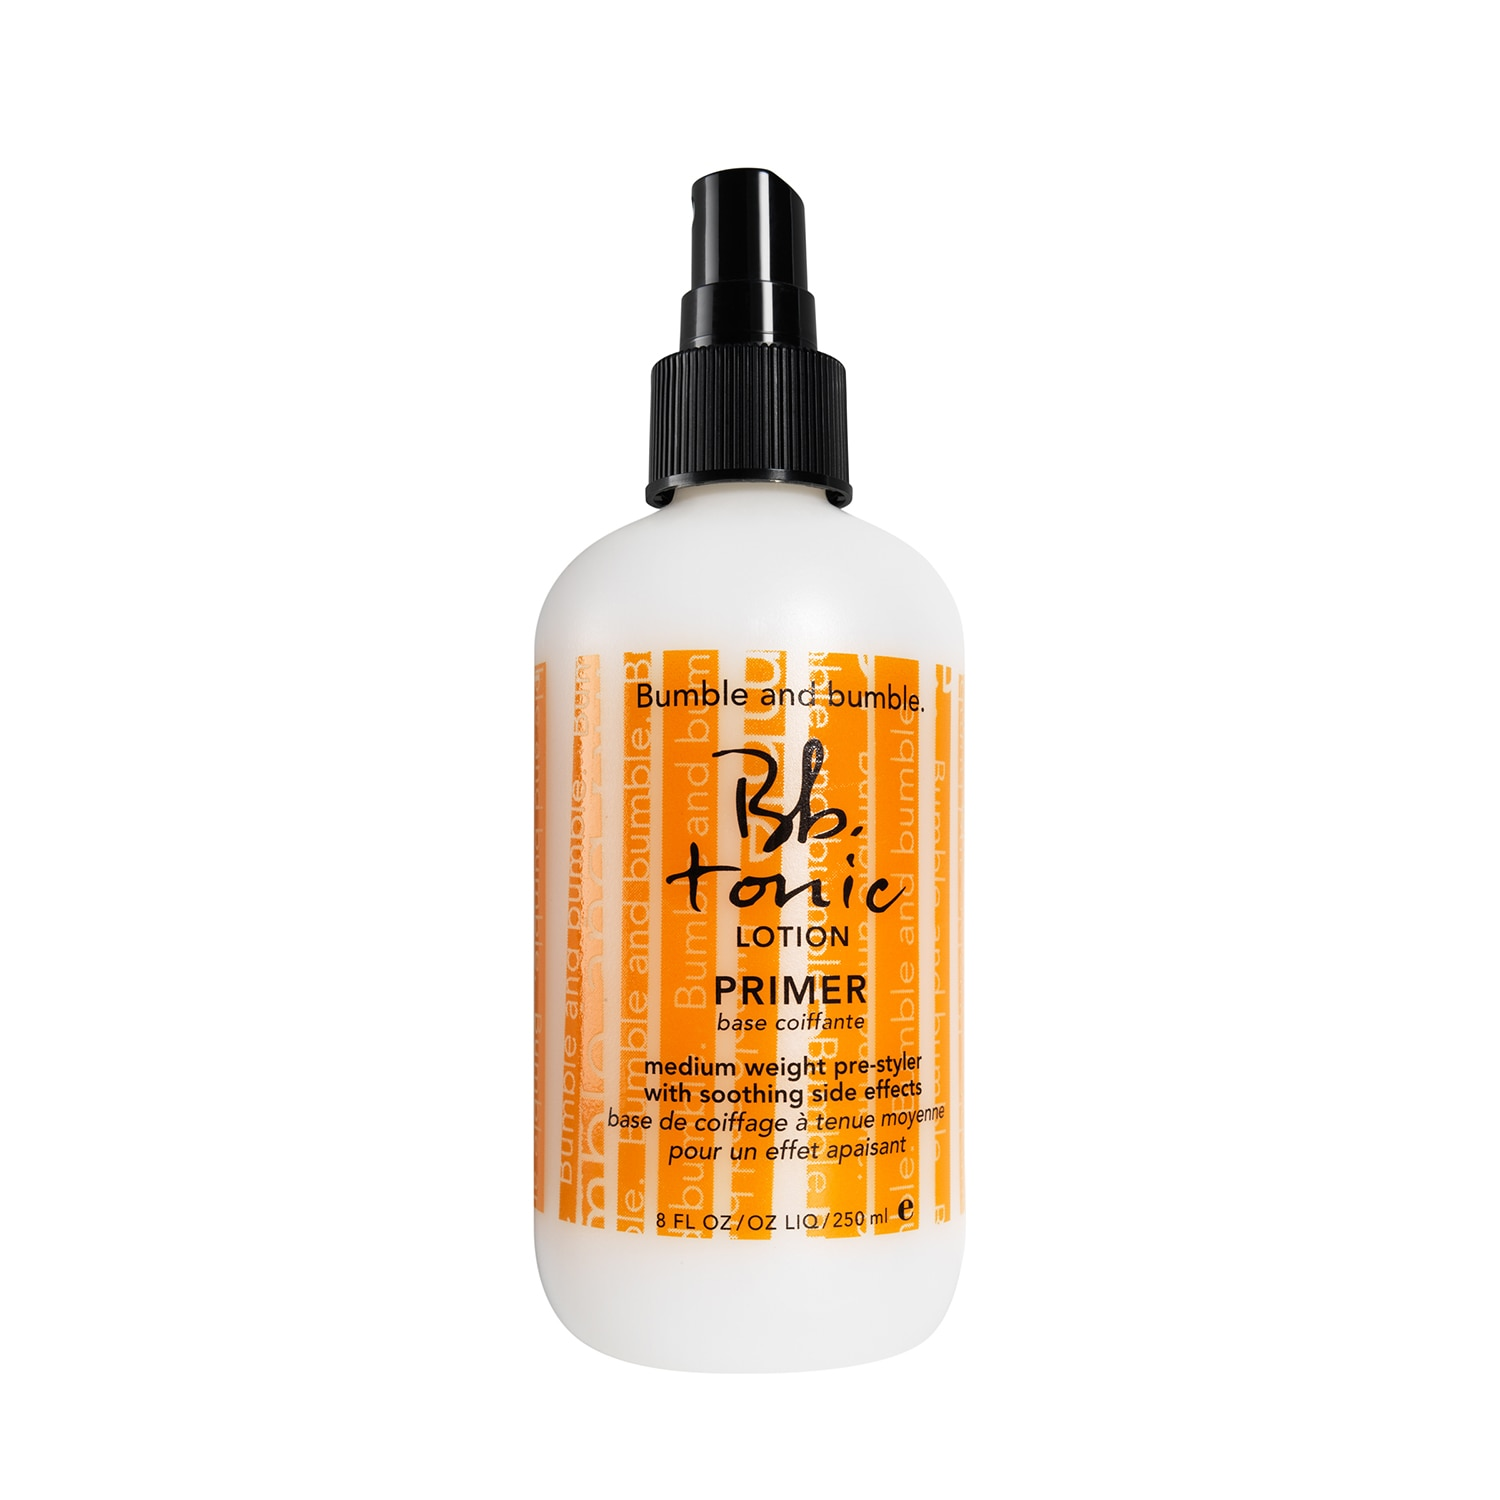 PRIMER HIDRATANTE TONIC LOTION PRIMER 250ML